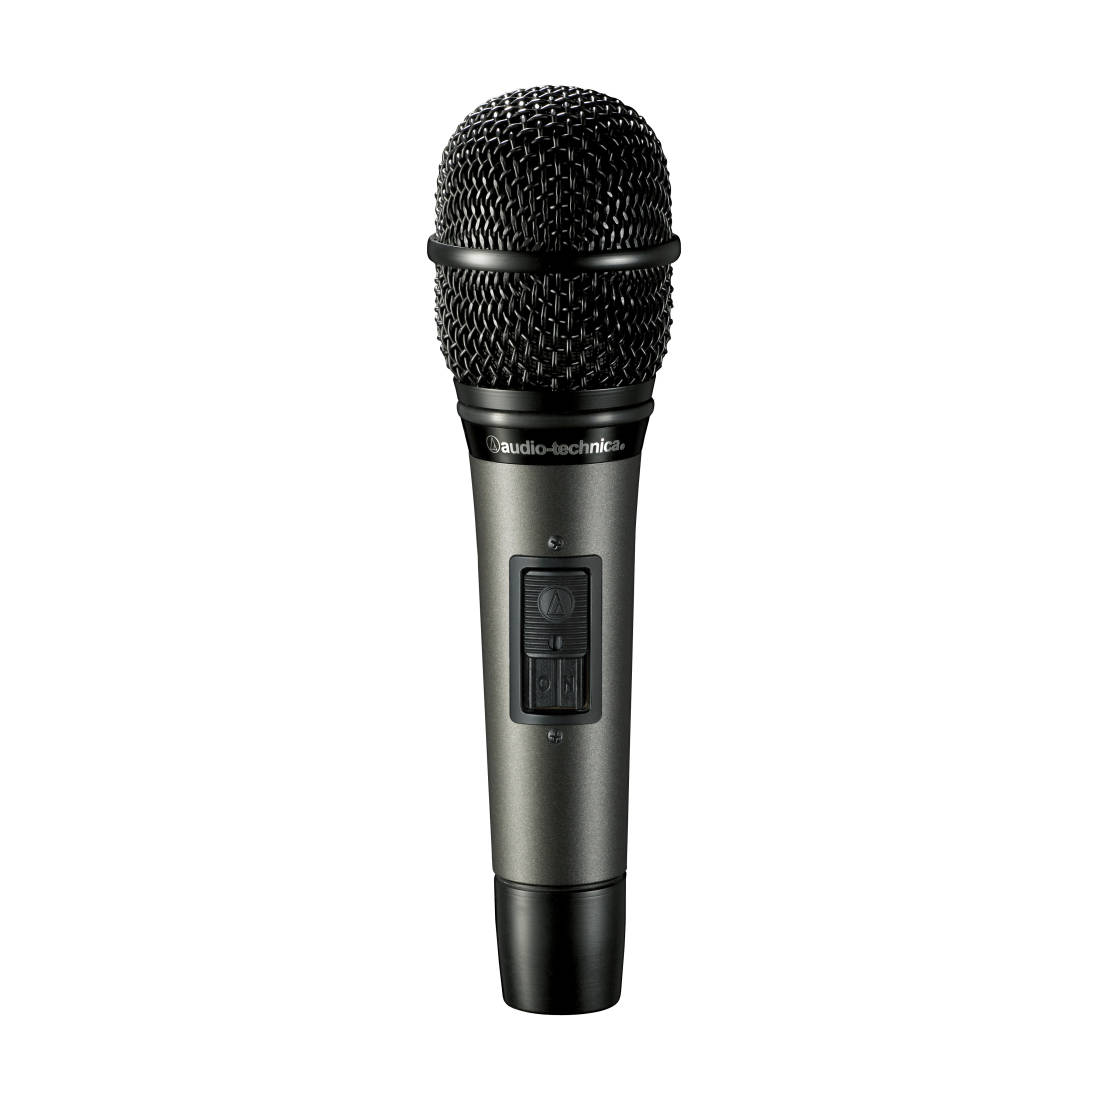 audio technica atm610a s handheld hypercardioid dynamic vocal microphone with switch long. Black Bedroom Furniture Sets. Home Design Ideas